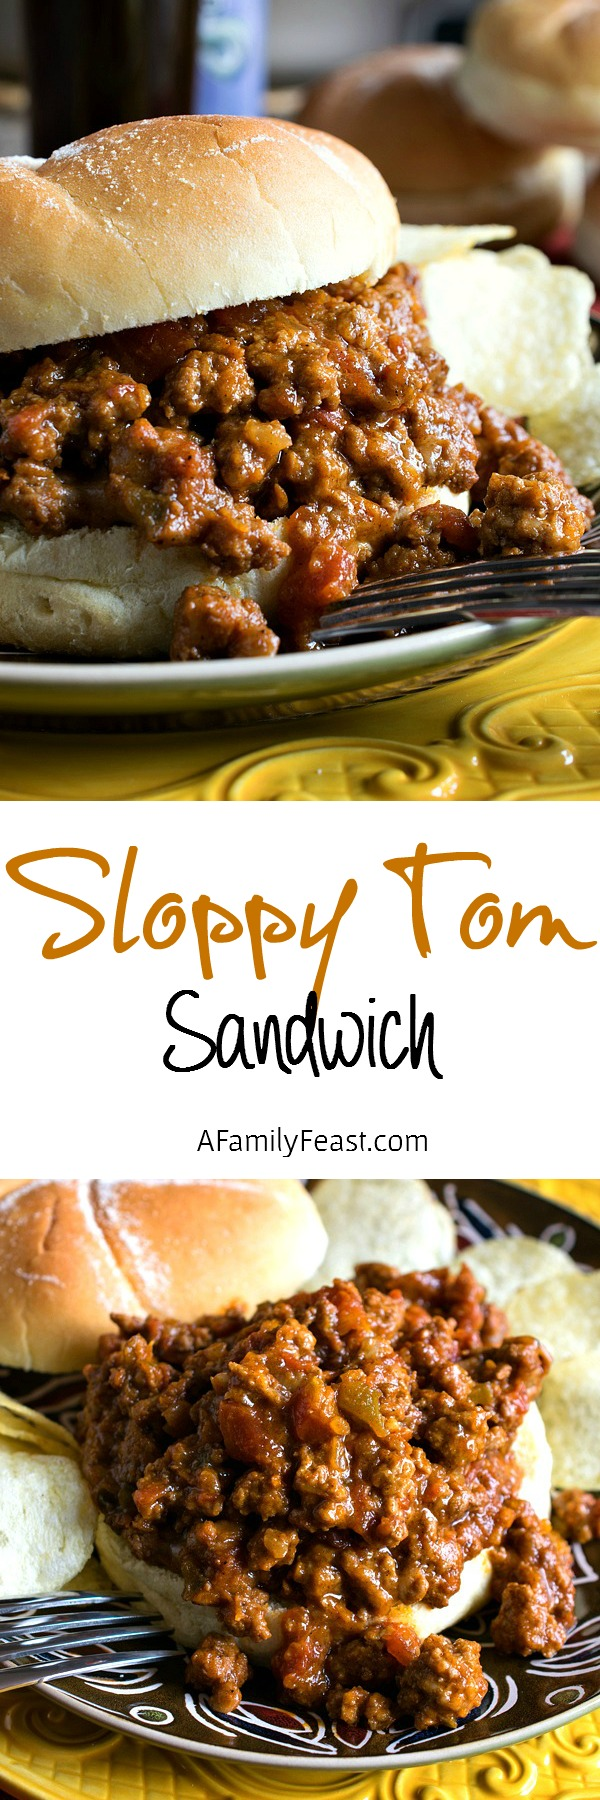 A Sloppy Tom Sandwich is Sloppy Joe's delicious poultry cousin! Perfect for game day parties!